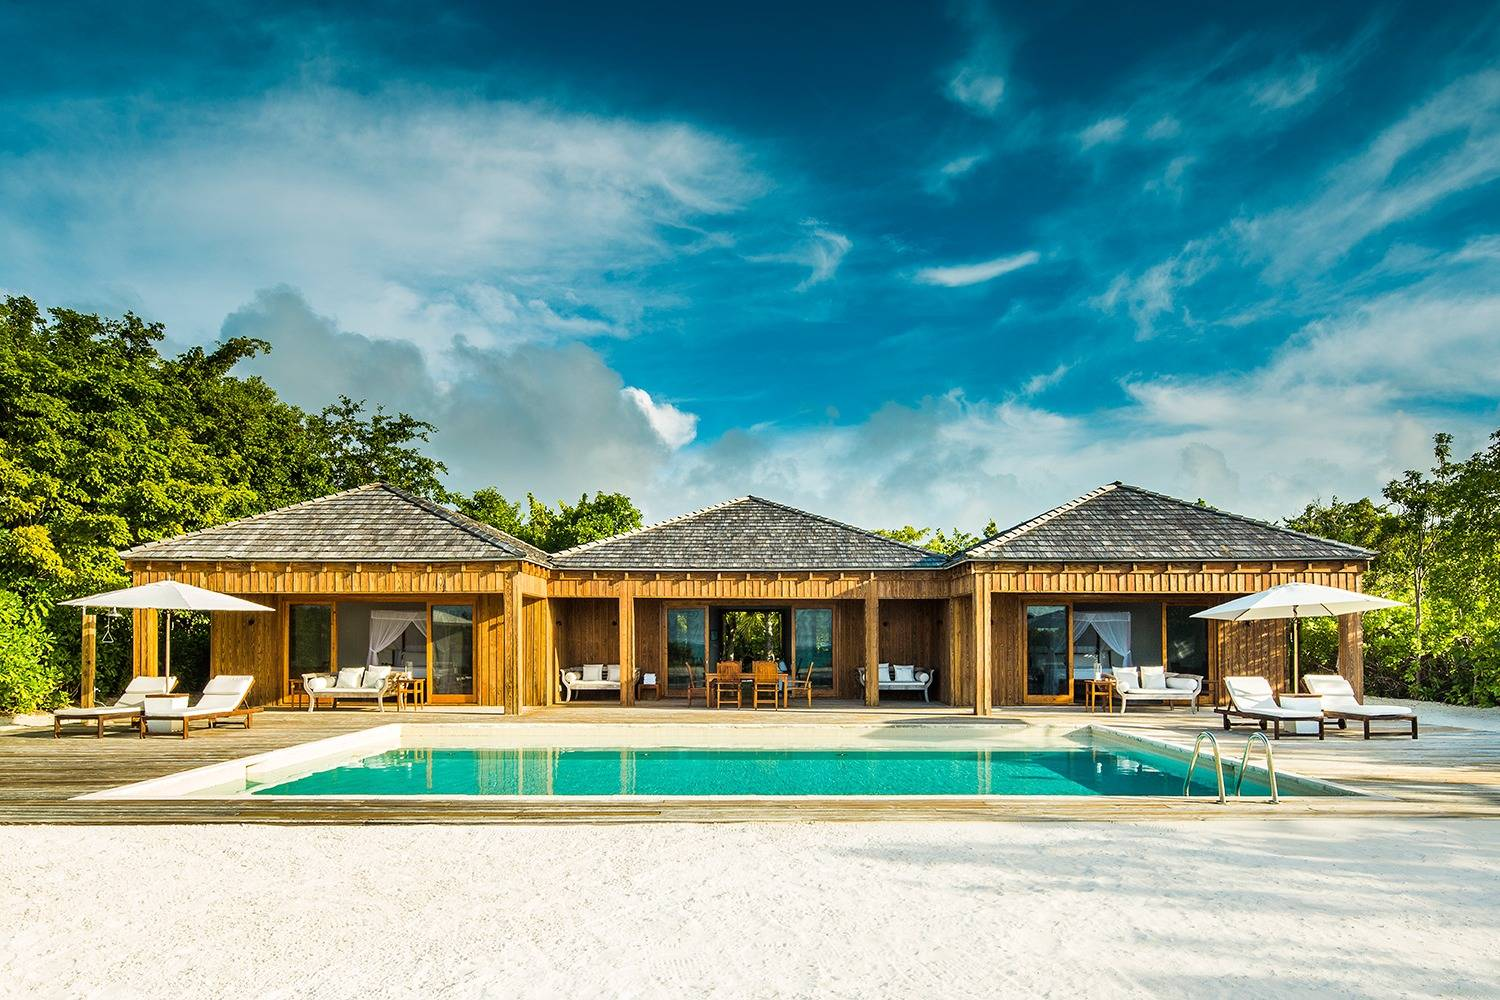 Private Chef in Parrot Cay, Turks and Caicos Islands header